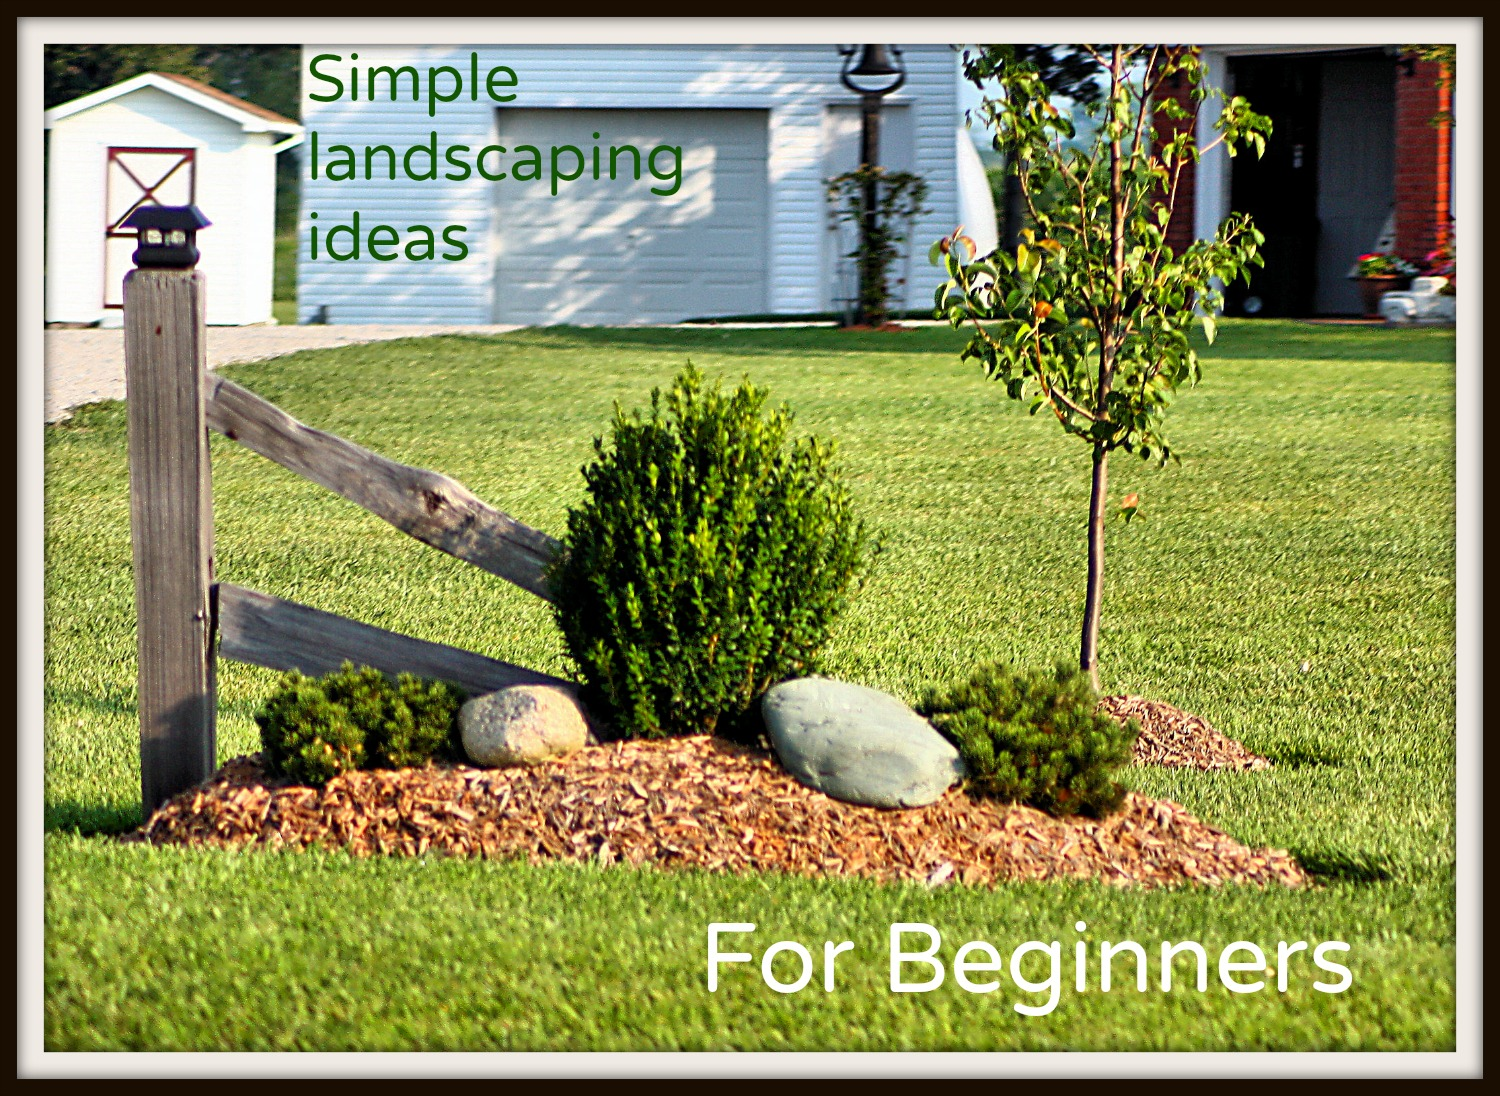 Simple landscaping ideas for beginners frador for Simple landscape design